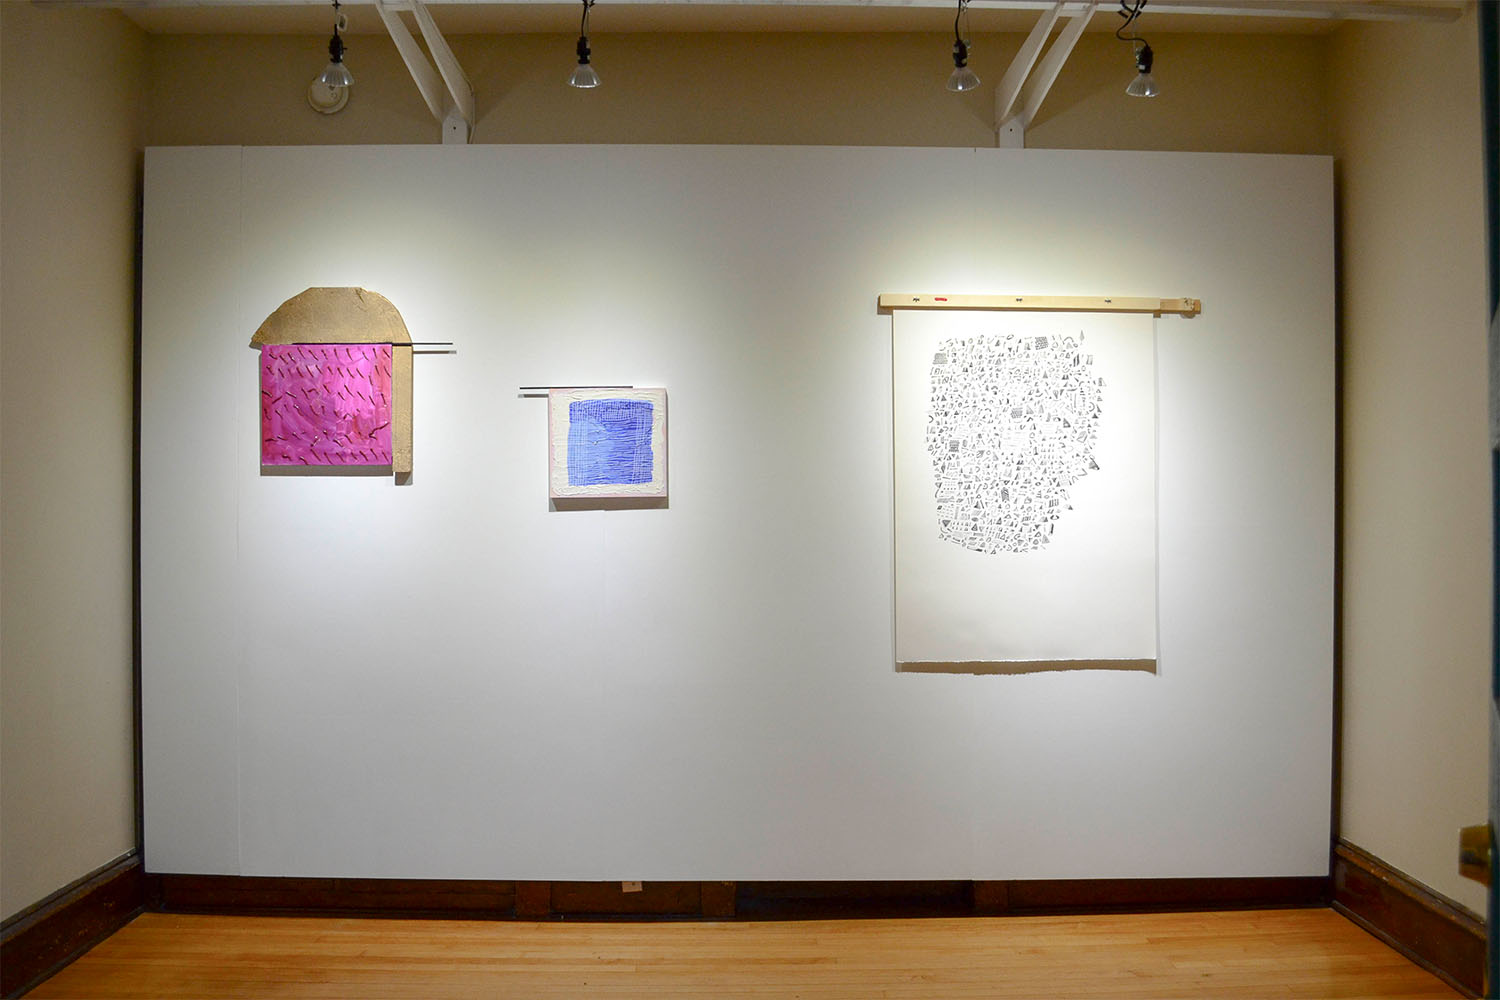 kate sheldon  /  alexis stiteler  / installation view